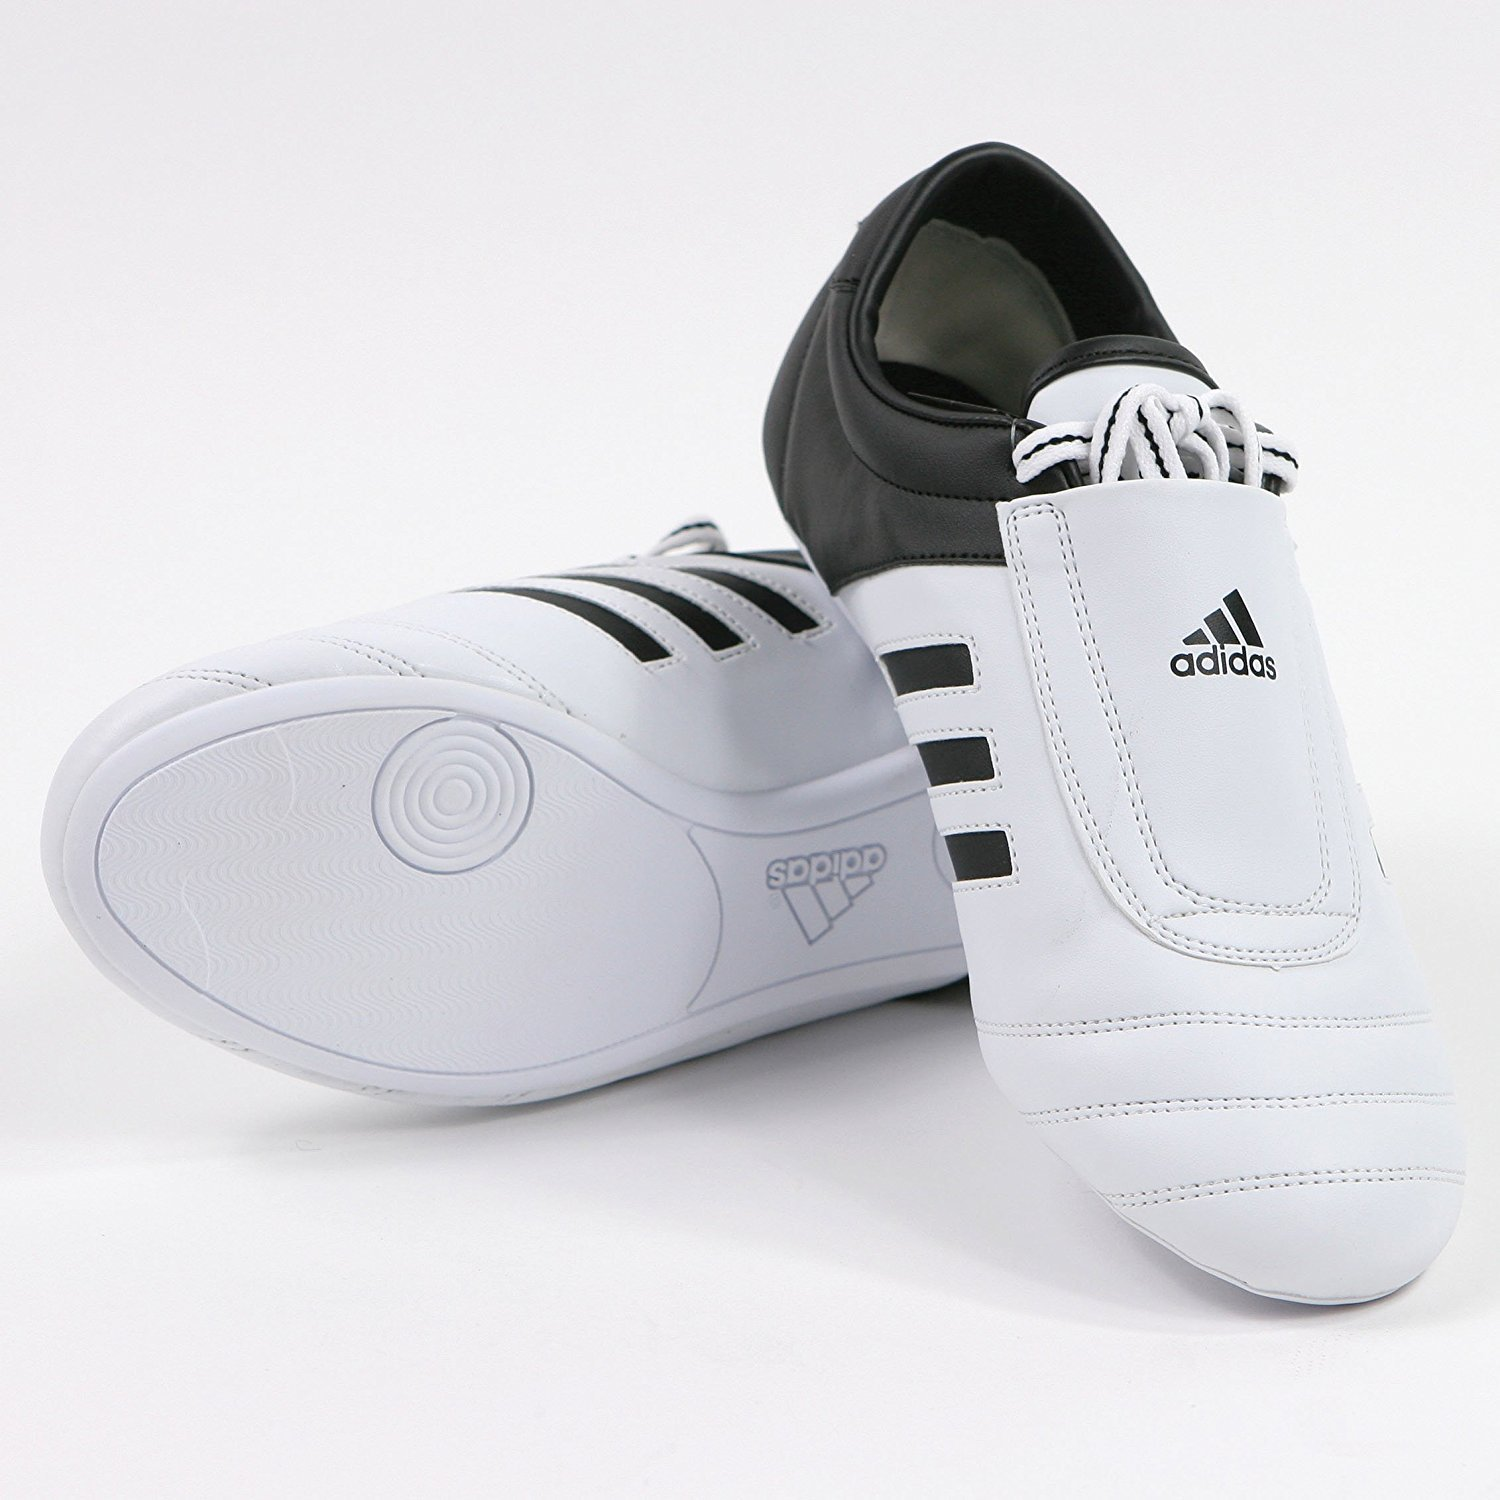 adidas® KICK Shoes Martial Arts Sneaker White with Black Stripes (9) by adidas